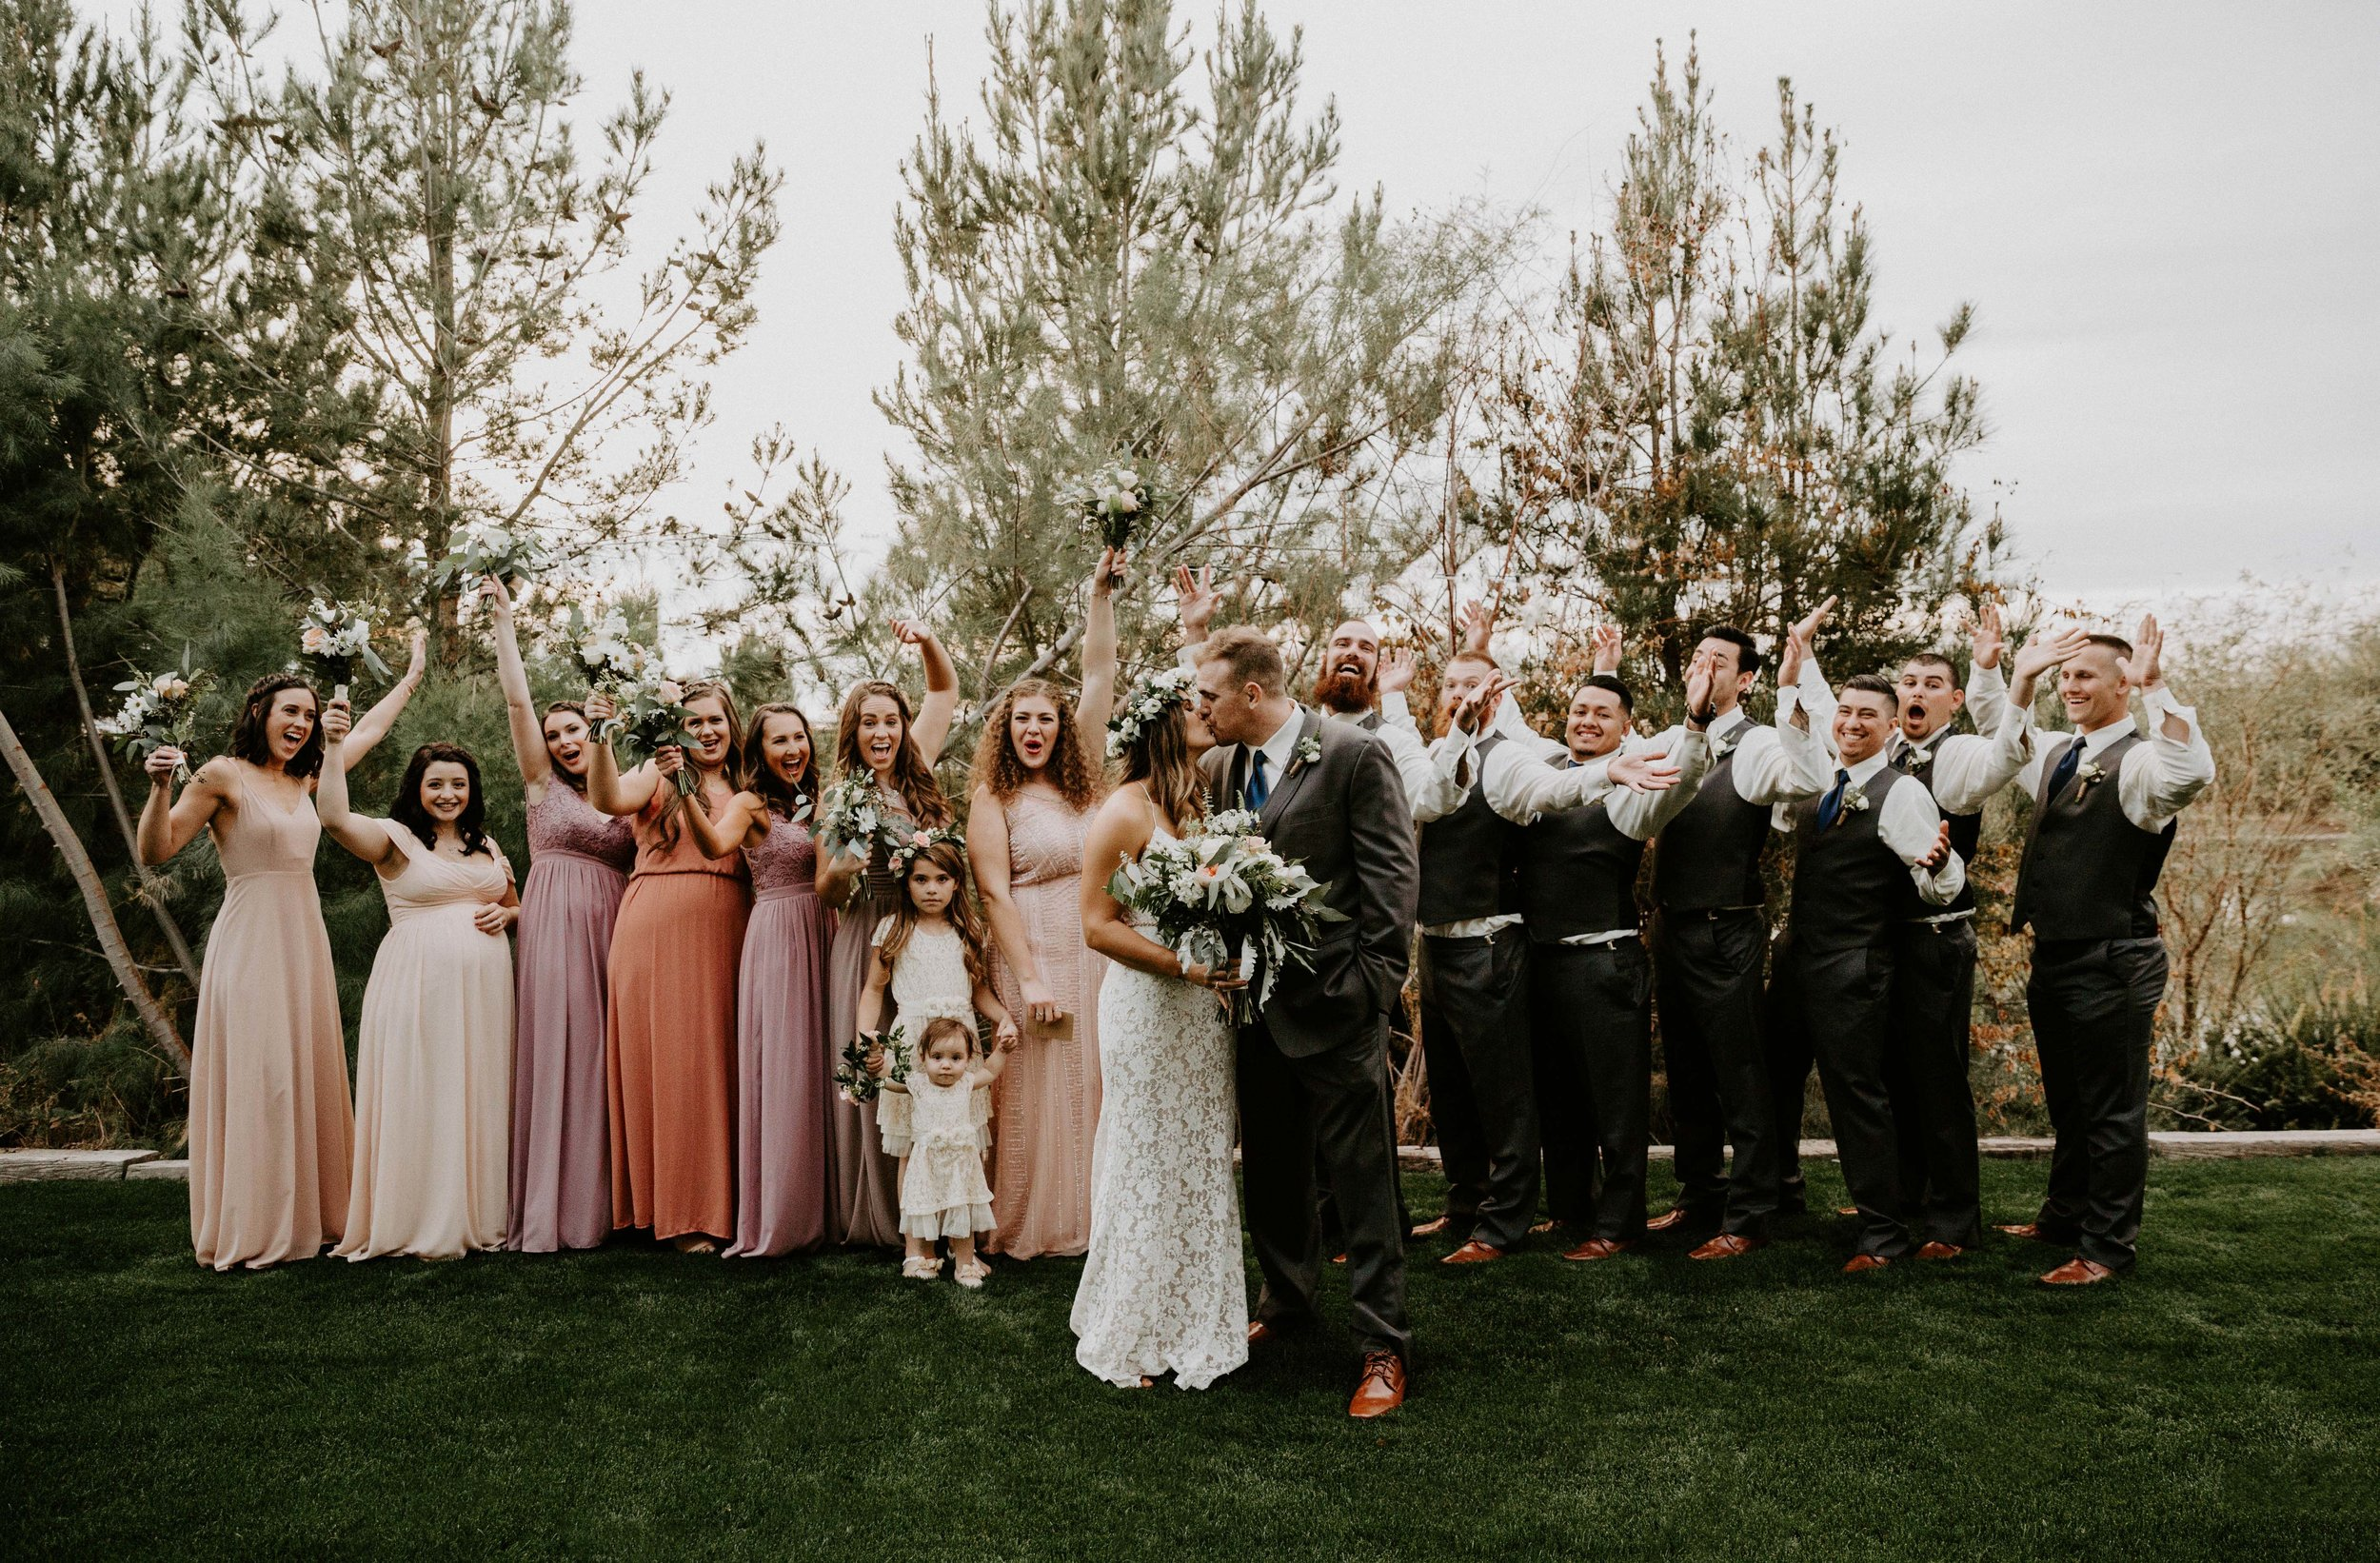 Outside the reception space at Windmill Winery wedding venue in Arizona